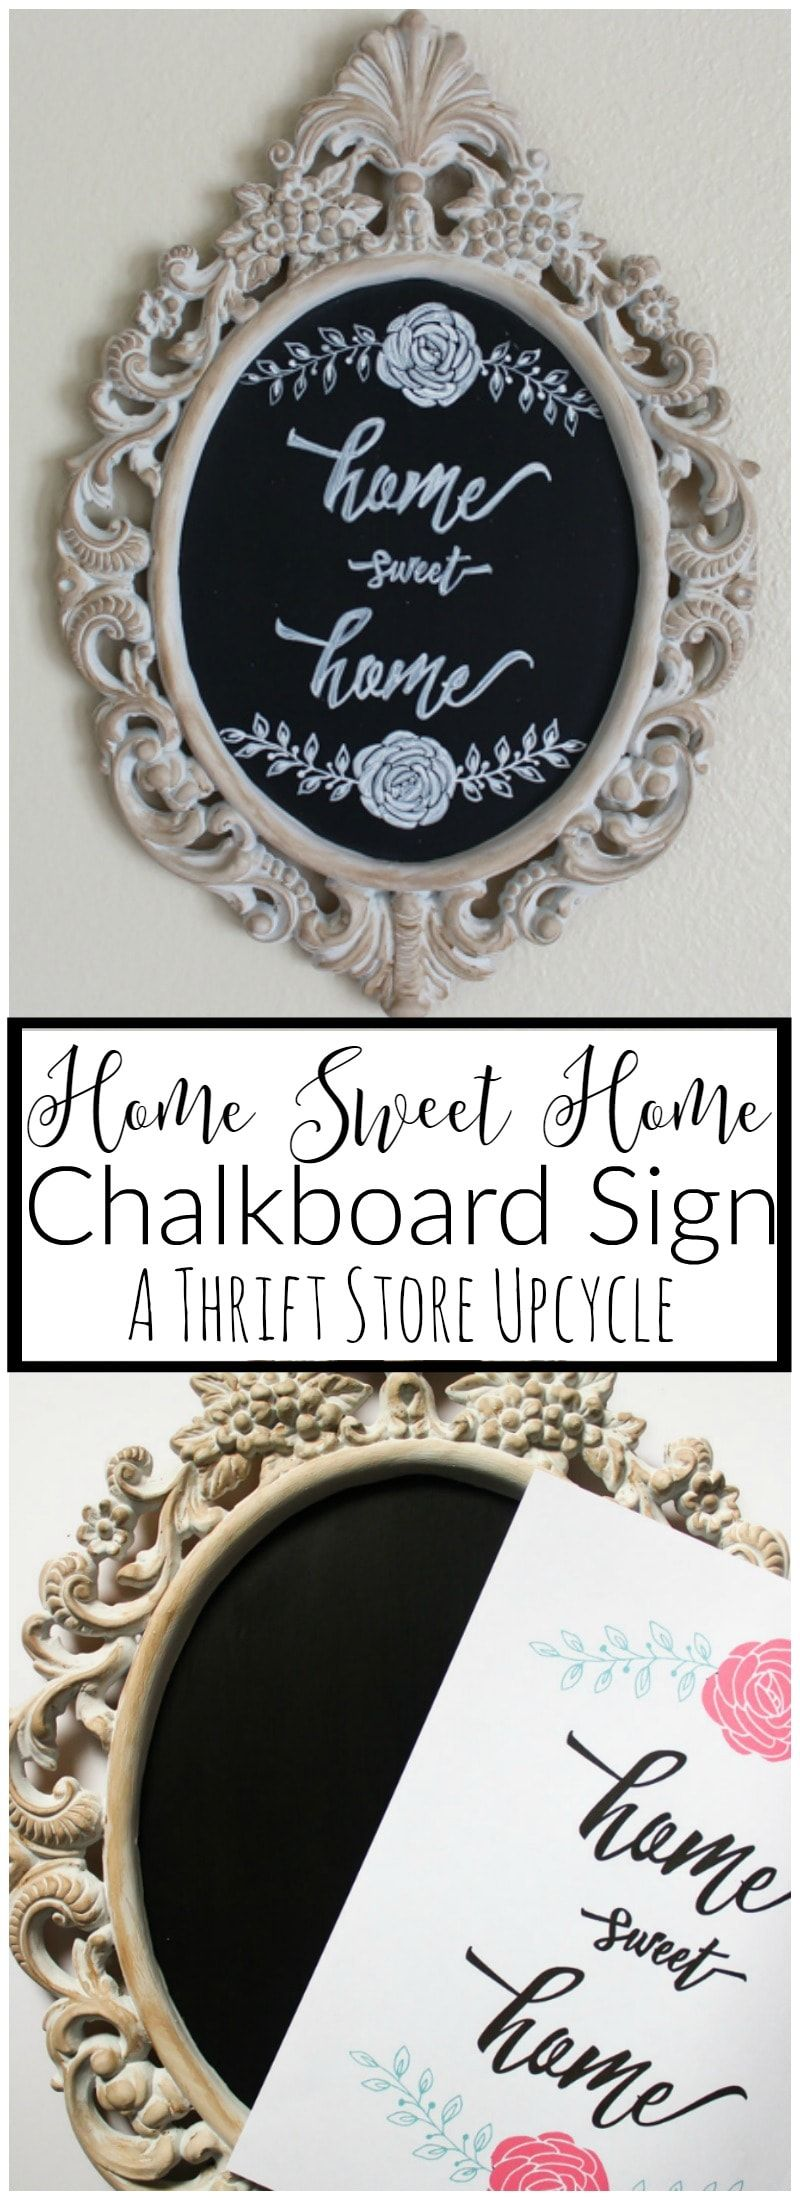 Home Sweet Home Chalkboard Sign | Chalkboards, Chalk pens and ...